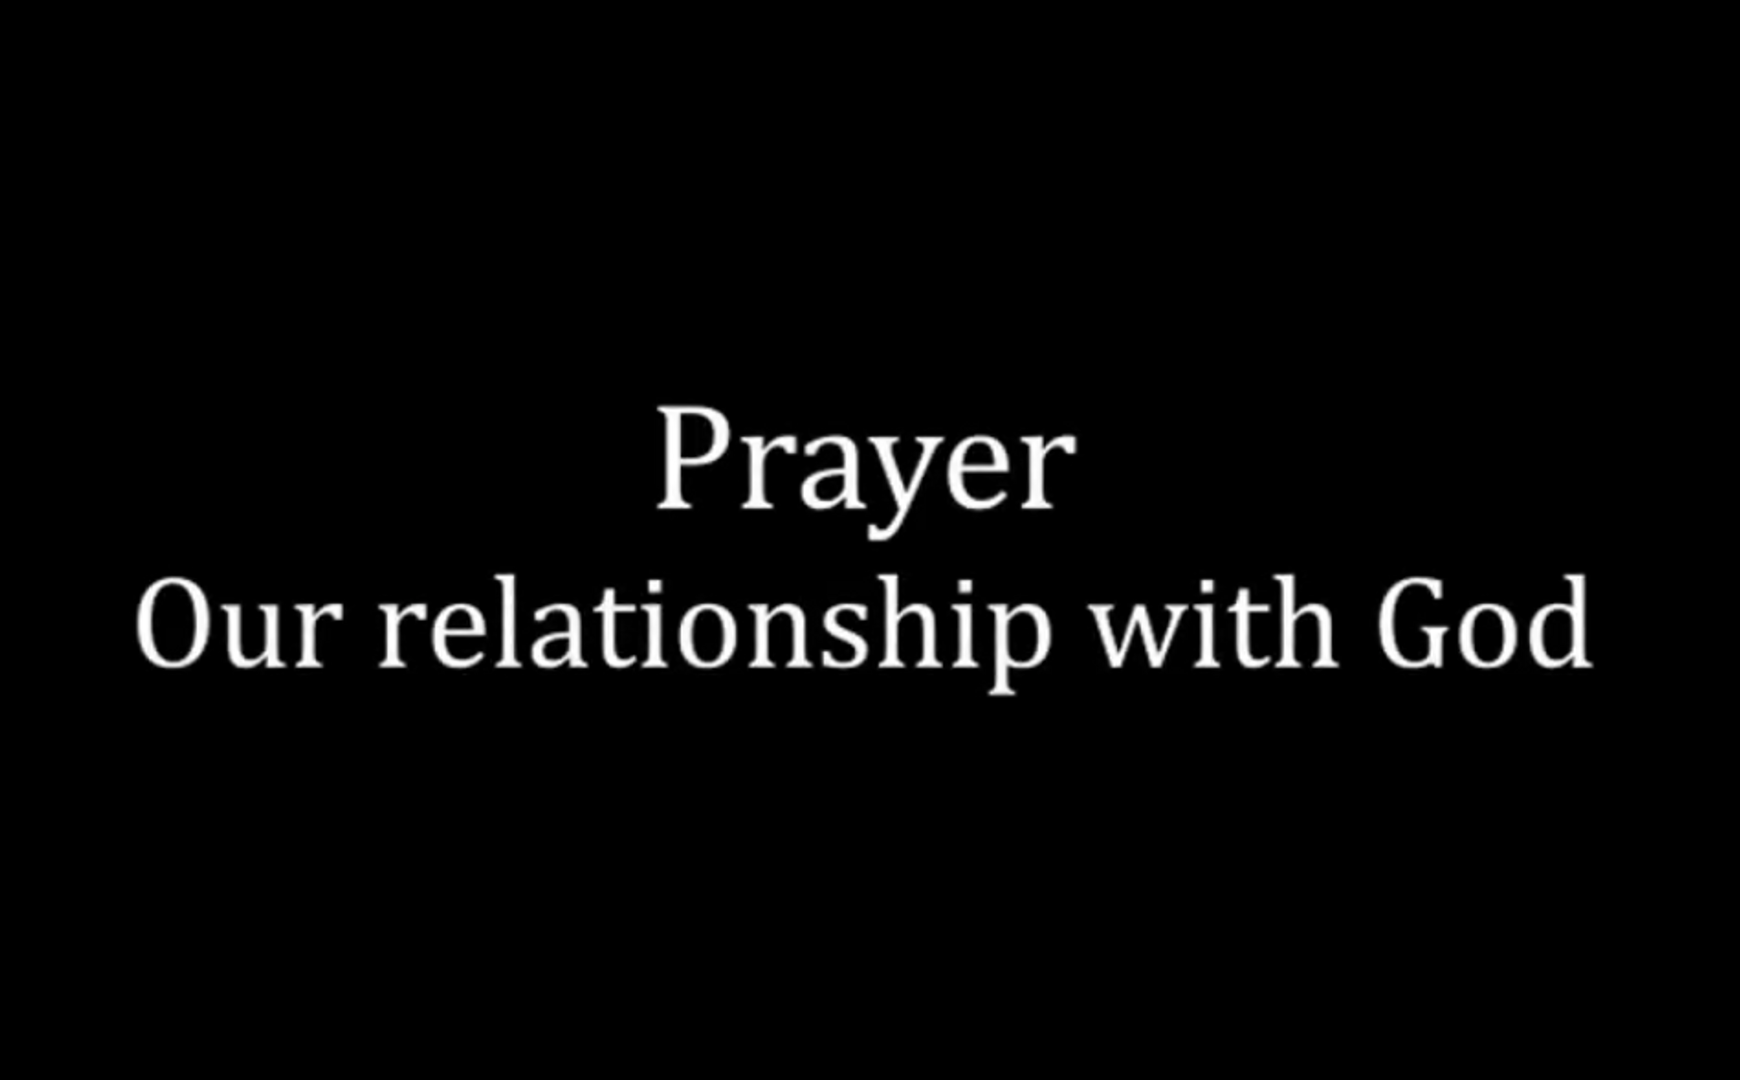 Video Prayer.mp4